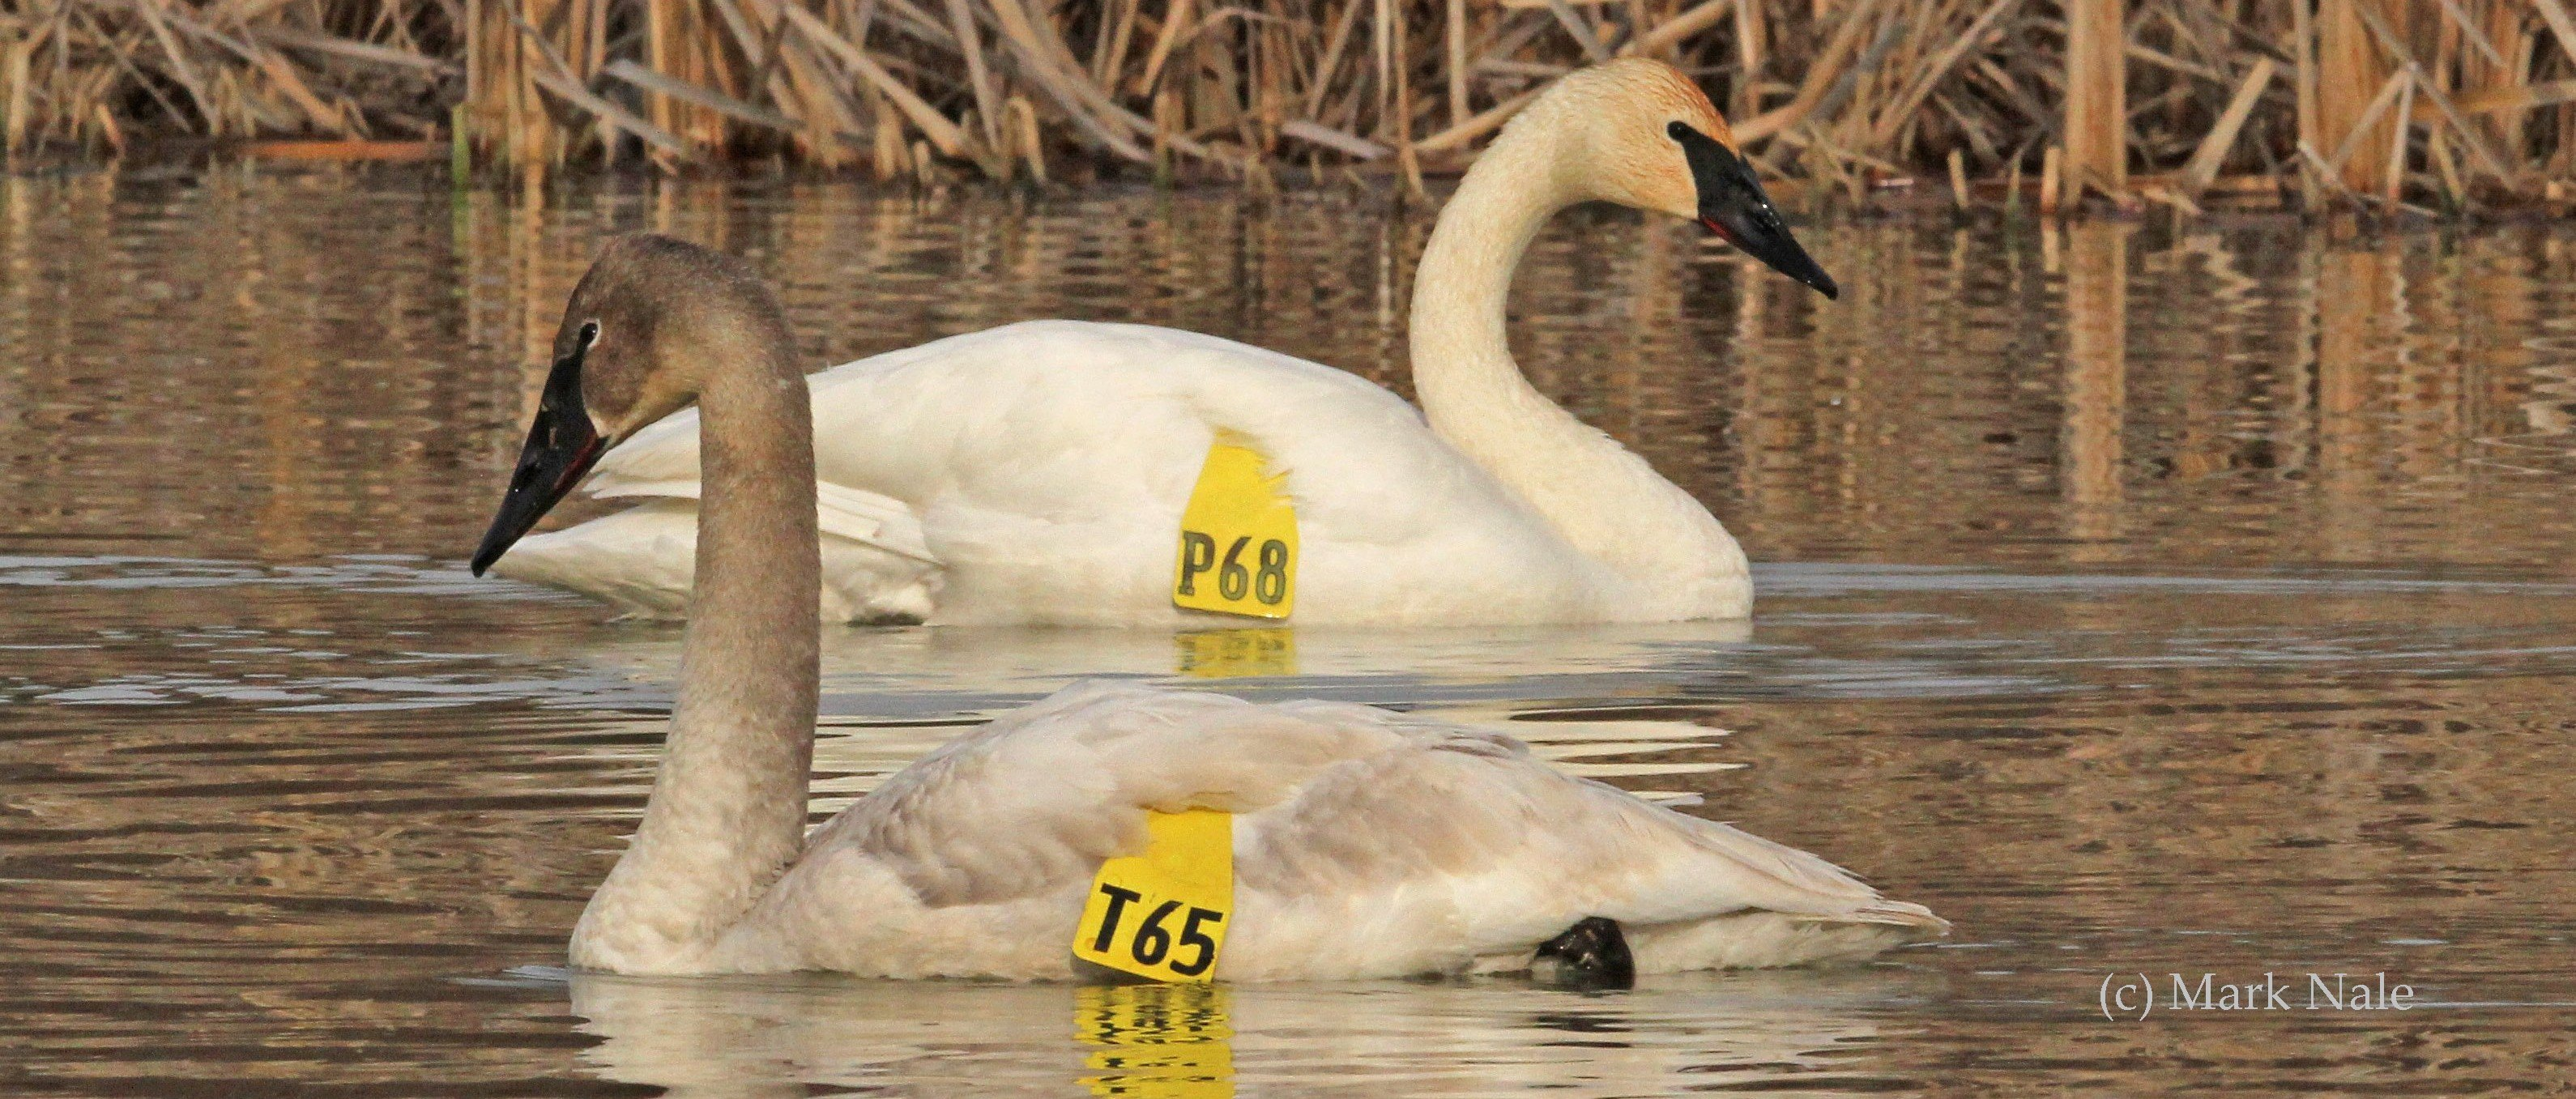 When you report a collared swan to Ebird and The Trumpeter Swan Society, you help track new migration sites and resting areas